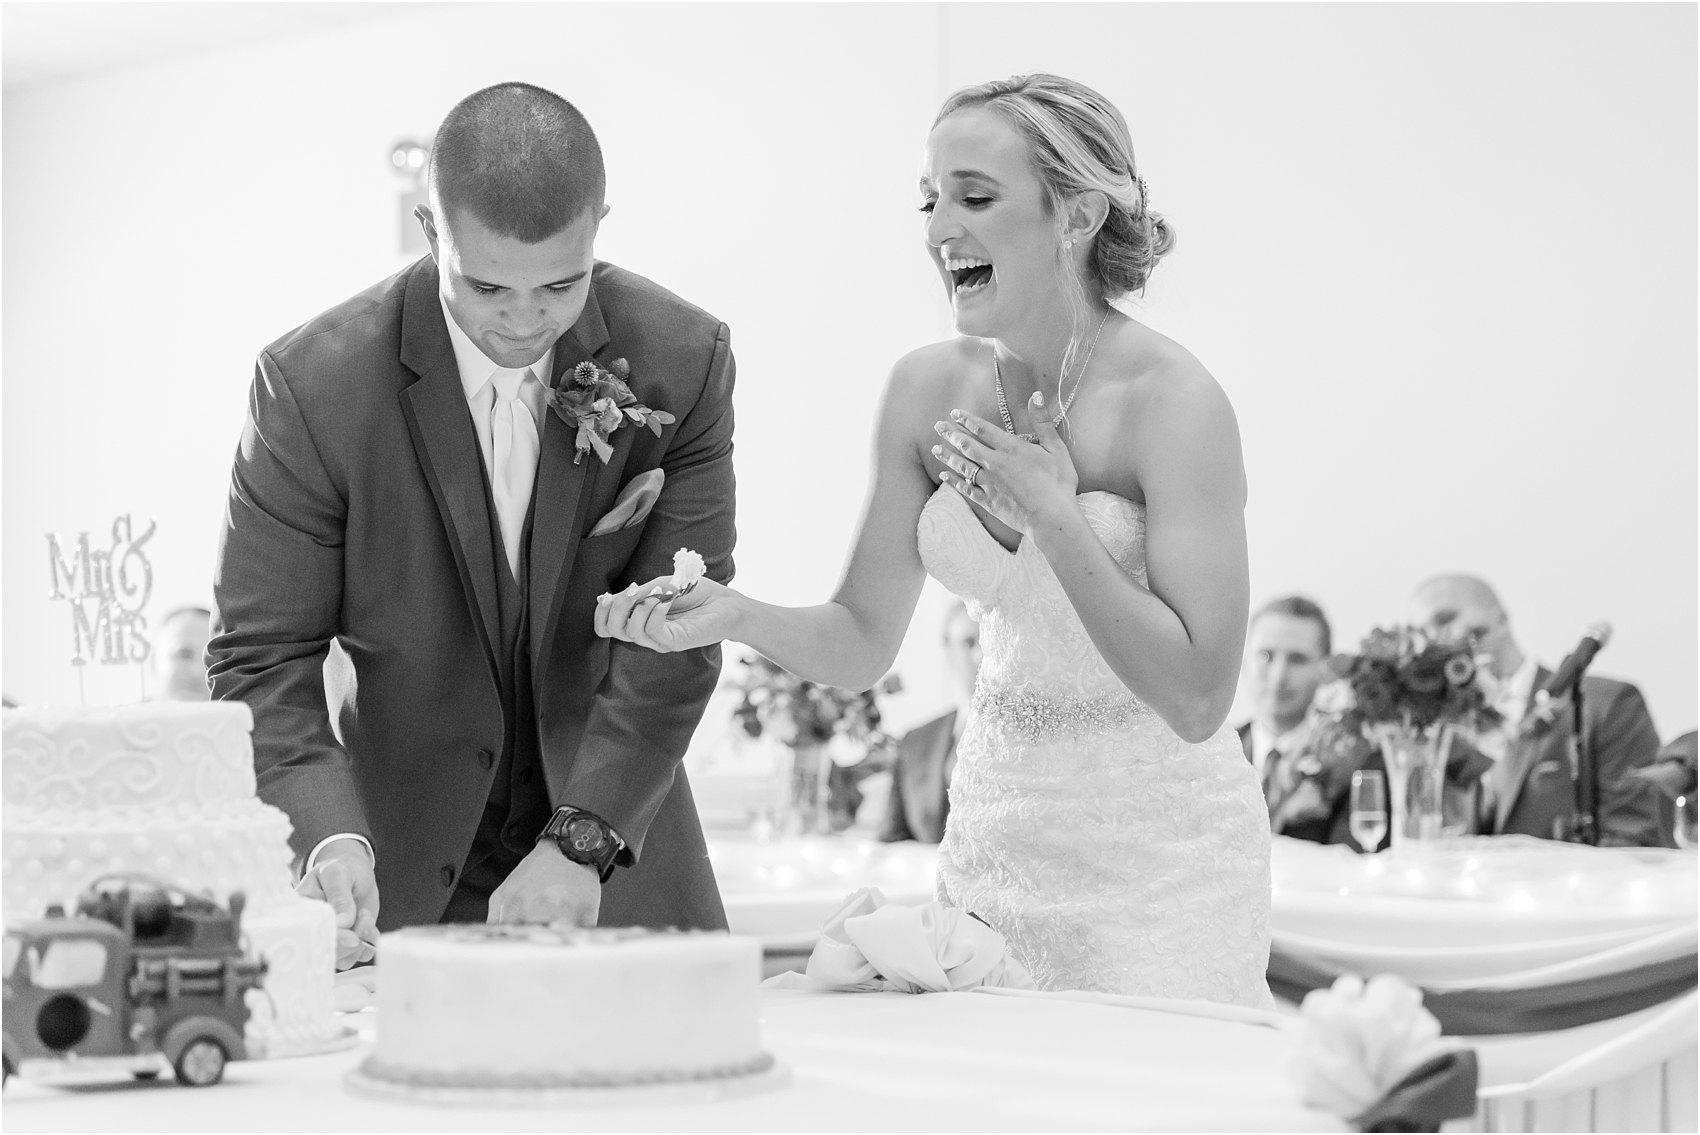 emotional-candid-romantic-wedding-photos-in-detroit-chicago-northern-michigan-by-courtney-carolyn-photography_0005.jpg